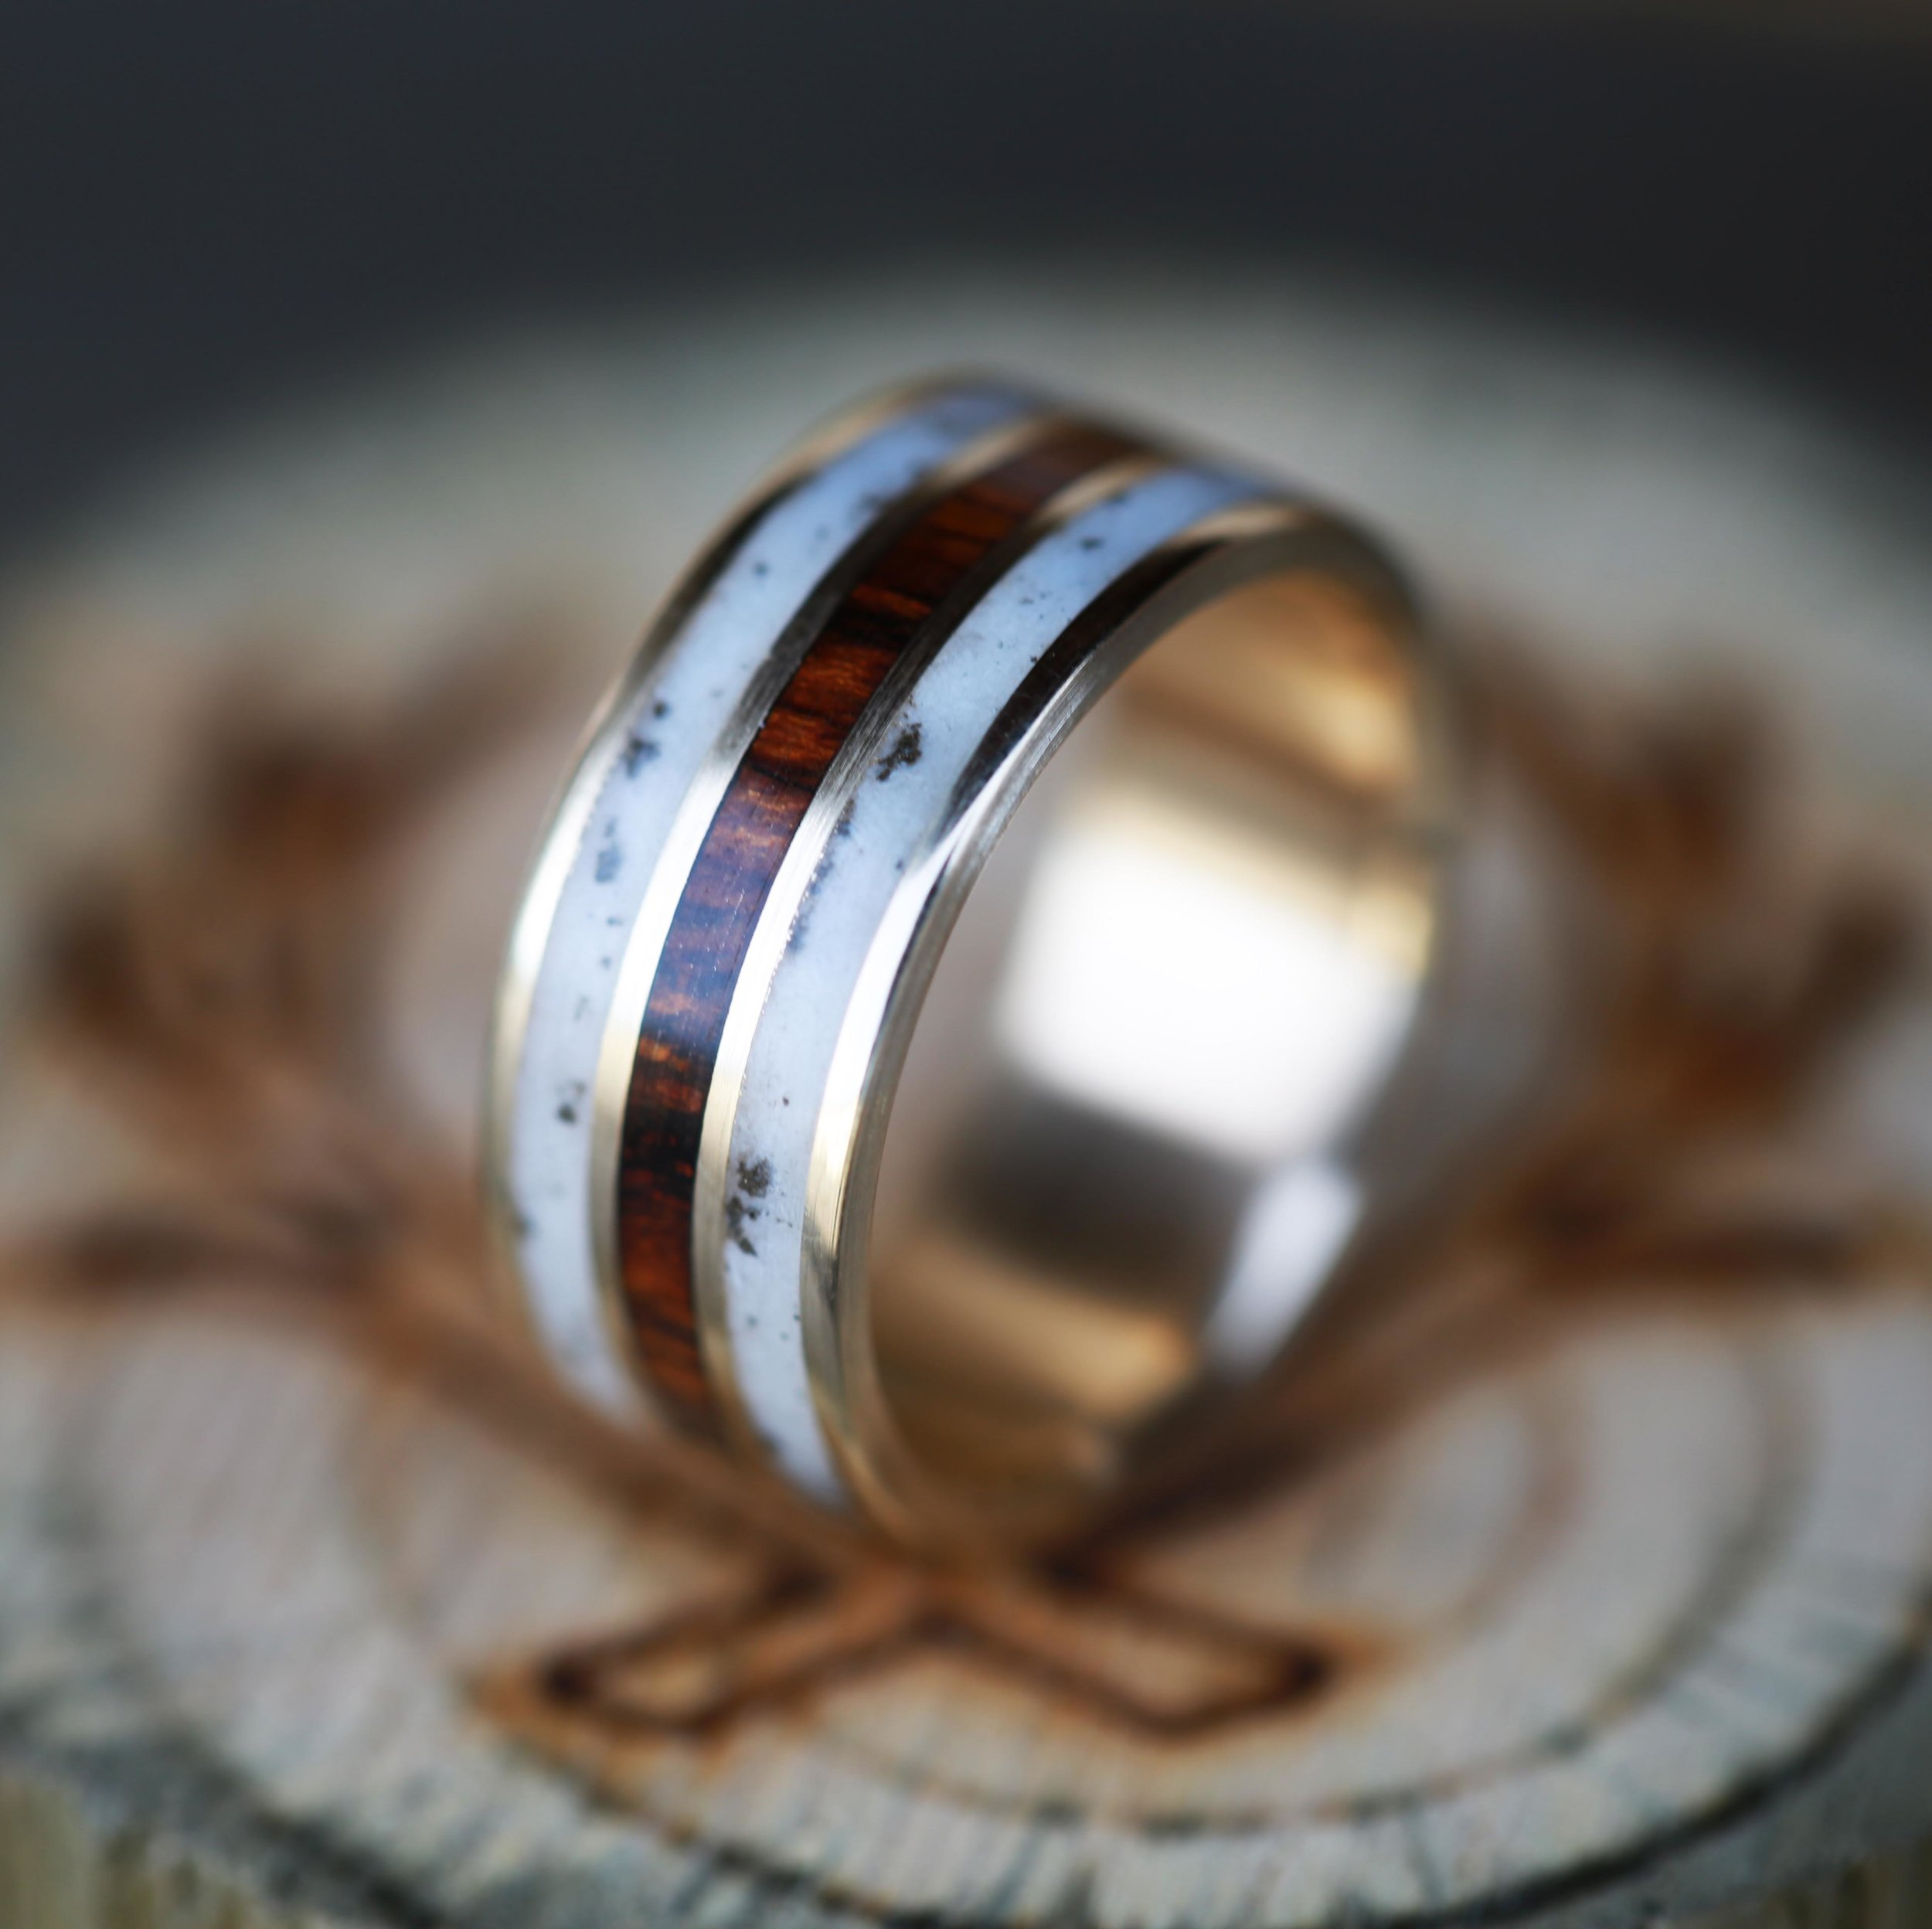 Quot Rio Quot 14k Gold Ring With Desert Ironwood And Antler Inlays Available In 14k White Rose Or